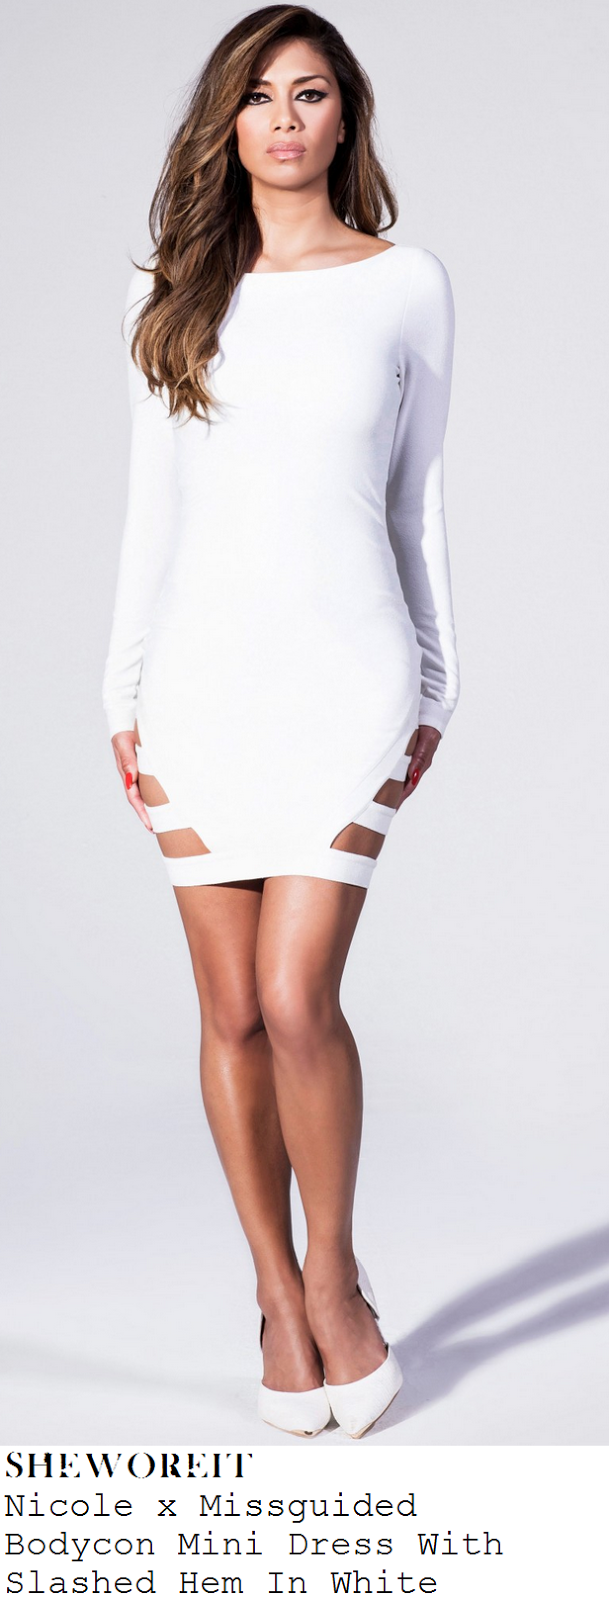 e0602fdef81d sheworeit: Sam Faiers' Nicole x Missguided Bright White Long ... Plunge  Bandage Bodycon Dress White. Approx length 92cm/36